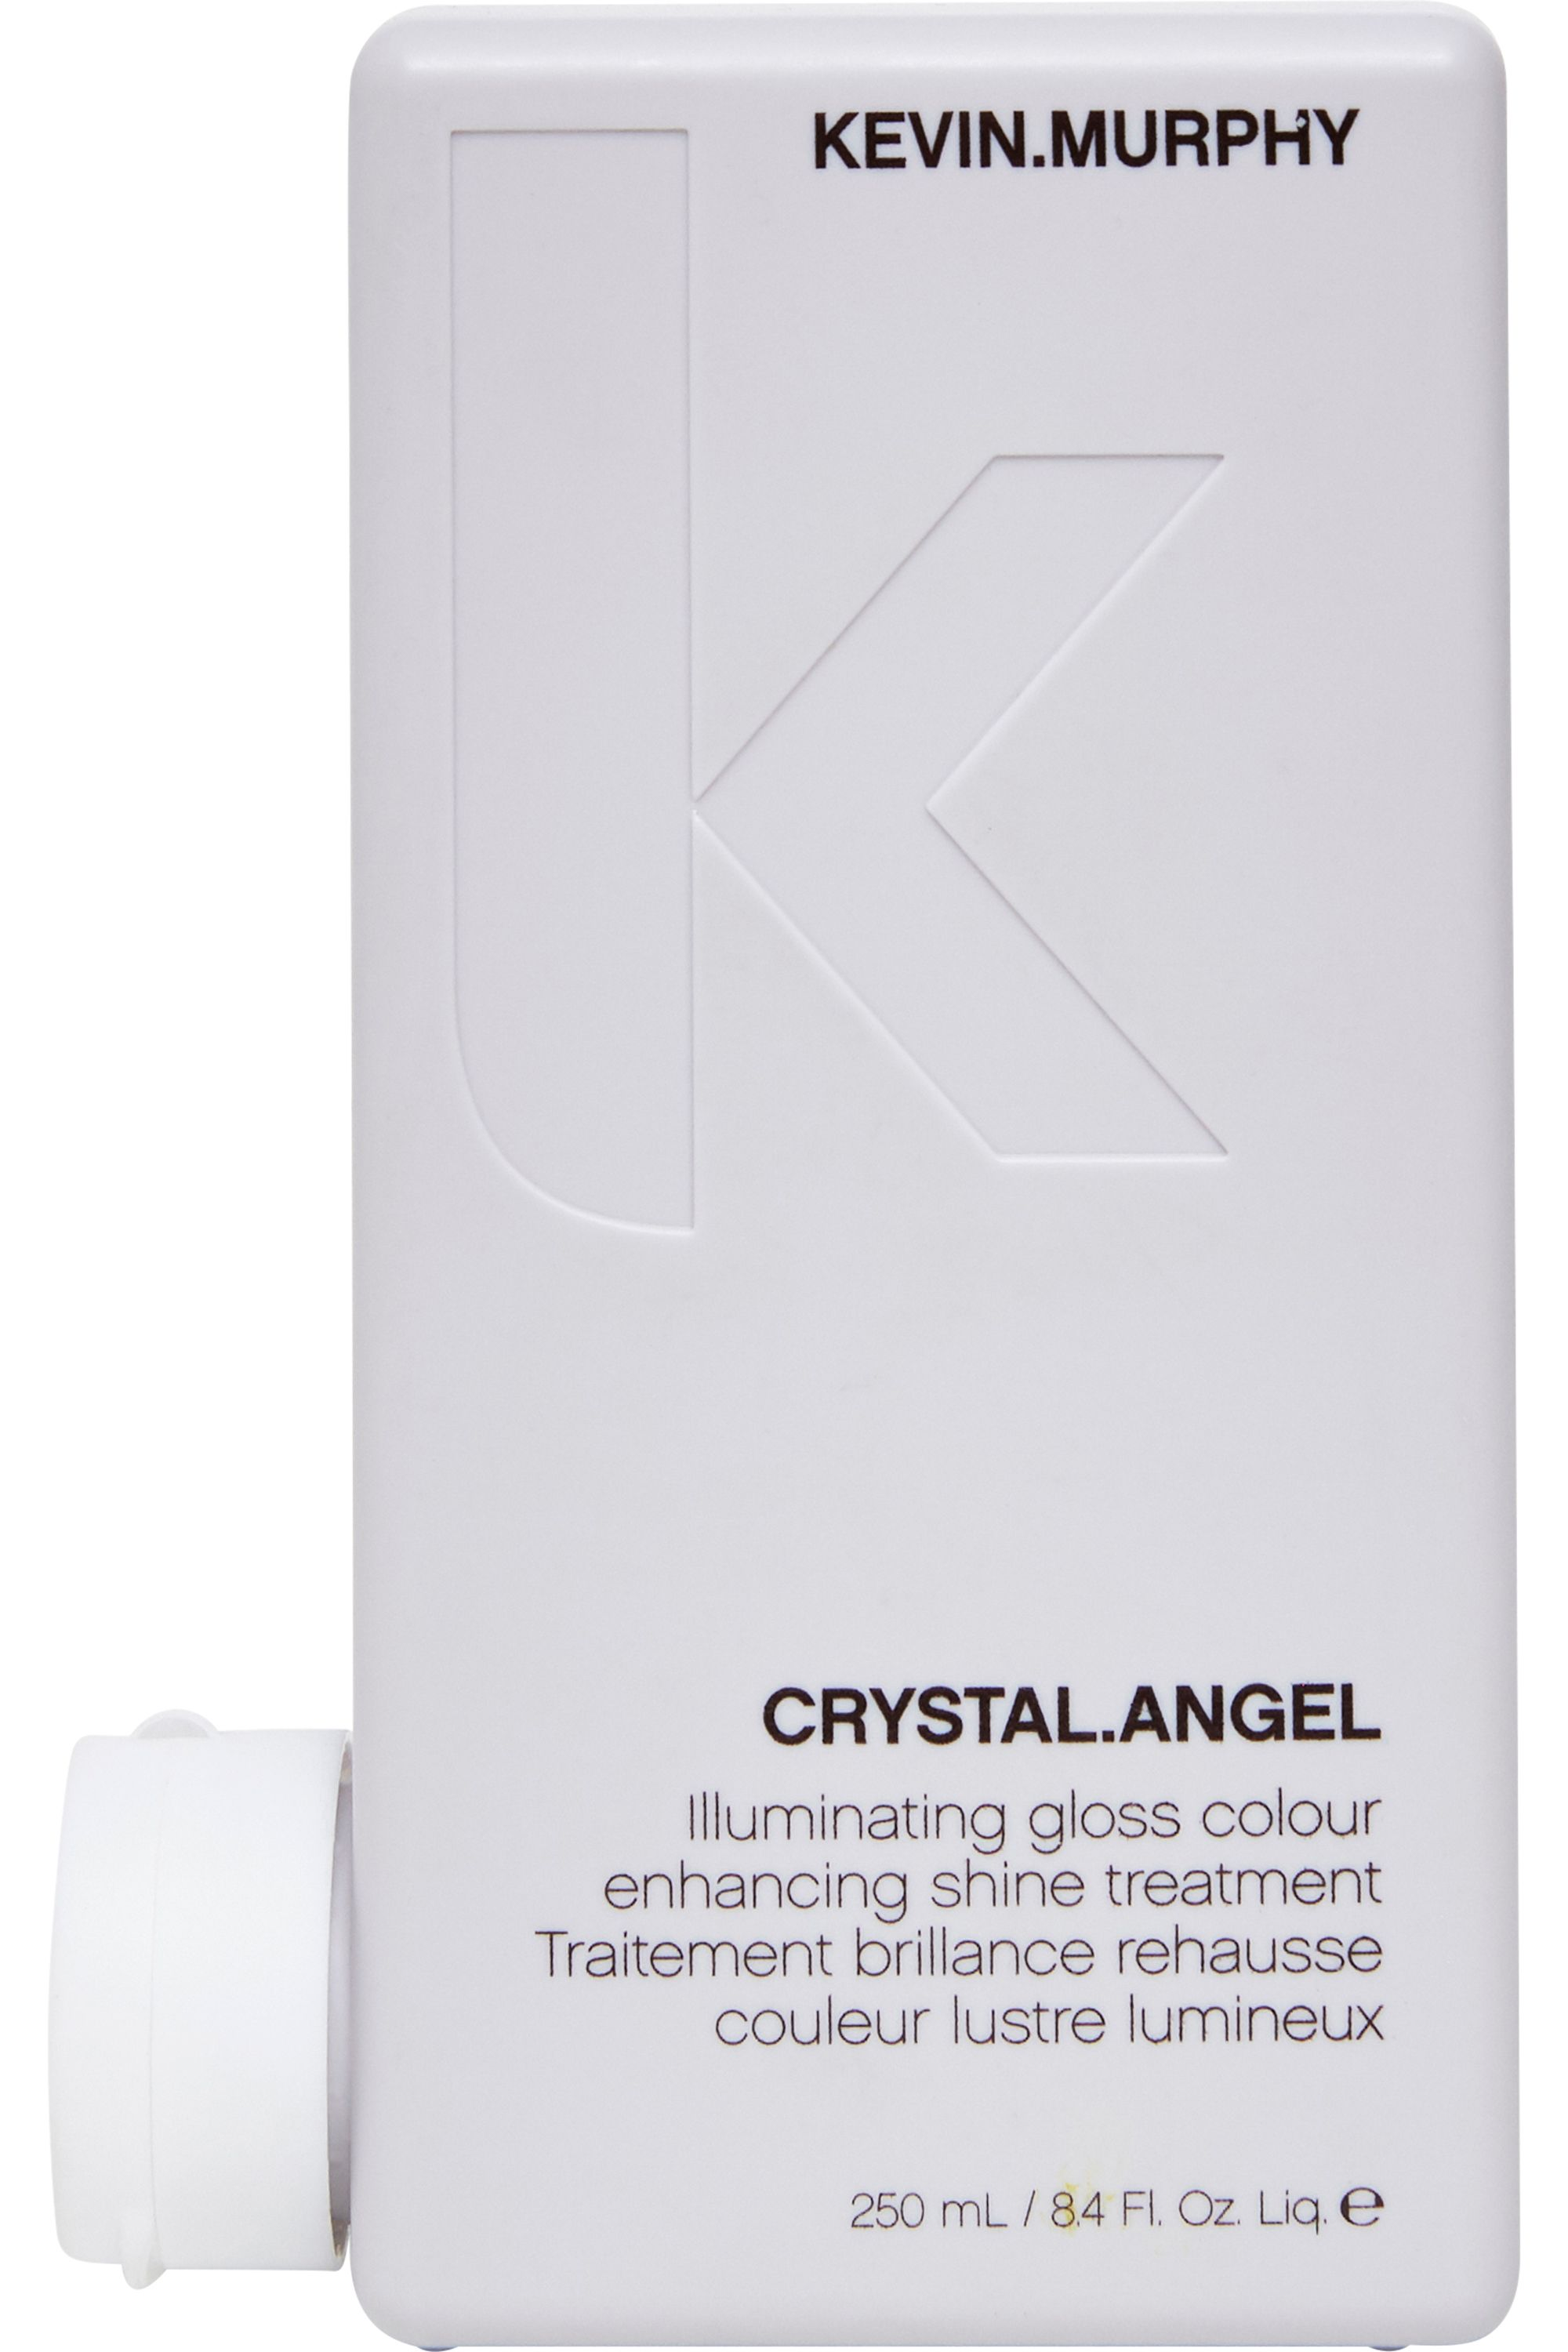 Blissim : KEVIN.MURPHY - Traitement sublimateur de brillance CRYSTAL.ANGEL - Traitement sublimateur de brillance CRYSTAL.ANGEL